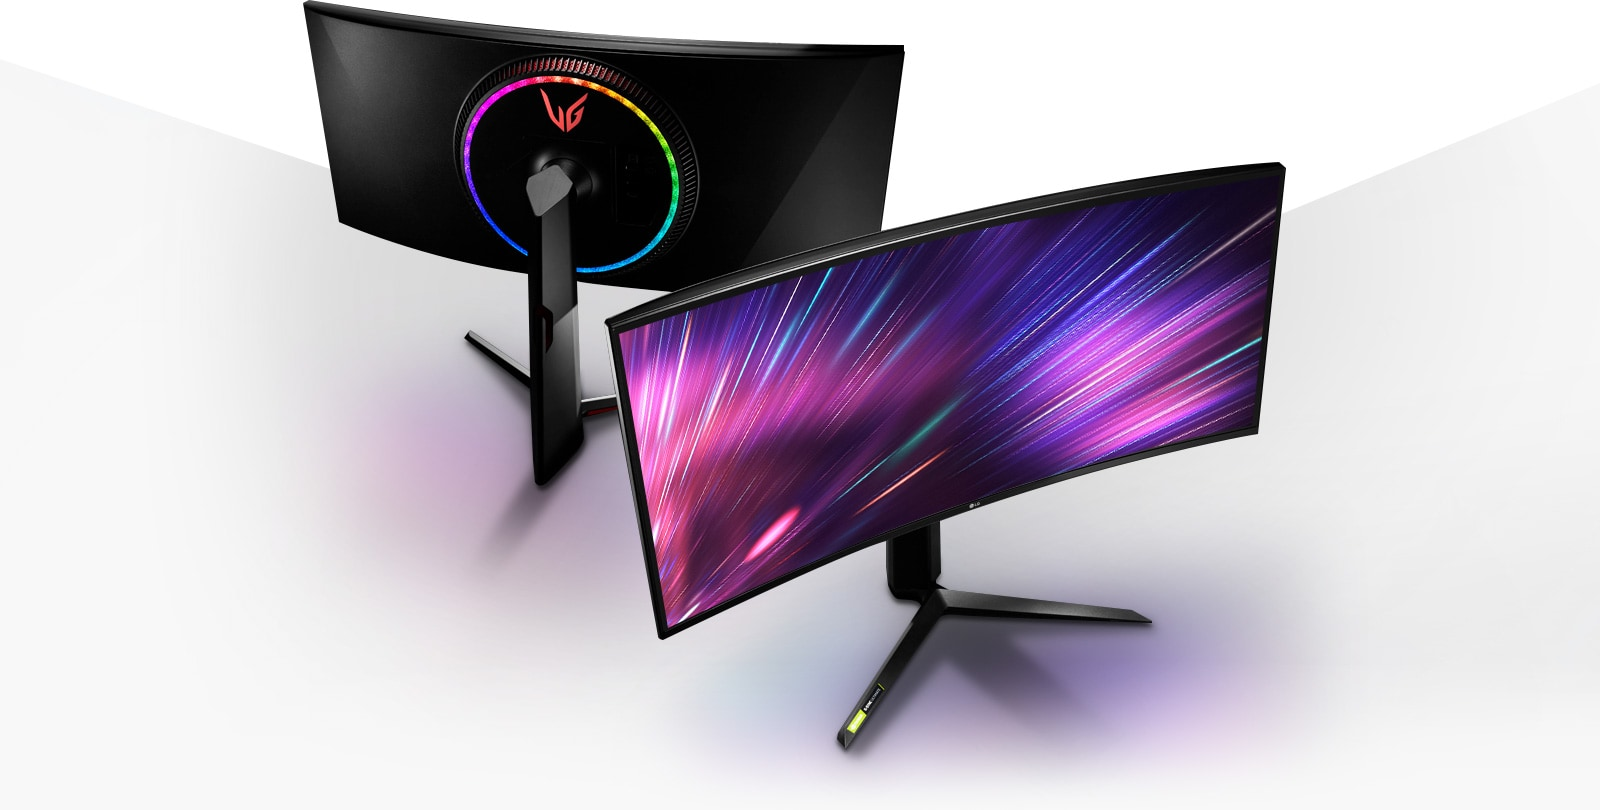 https://www.lg.com/ae/images/consumer-monitors/md07532640/Features/34GP950G-B_gaming-monitors_stylish-desgn-d.jpg